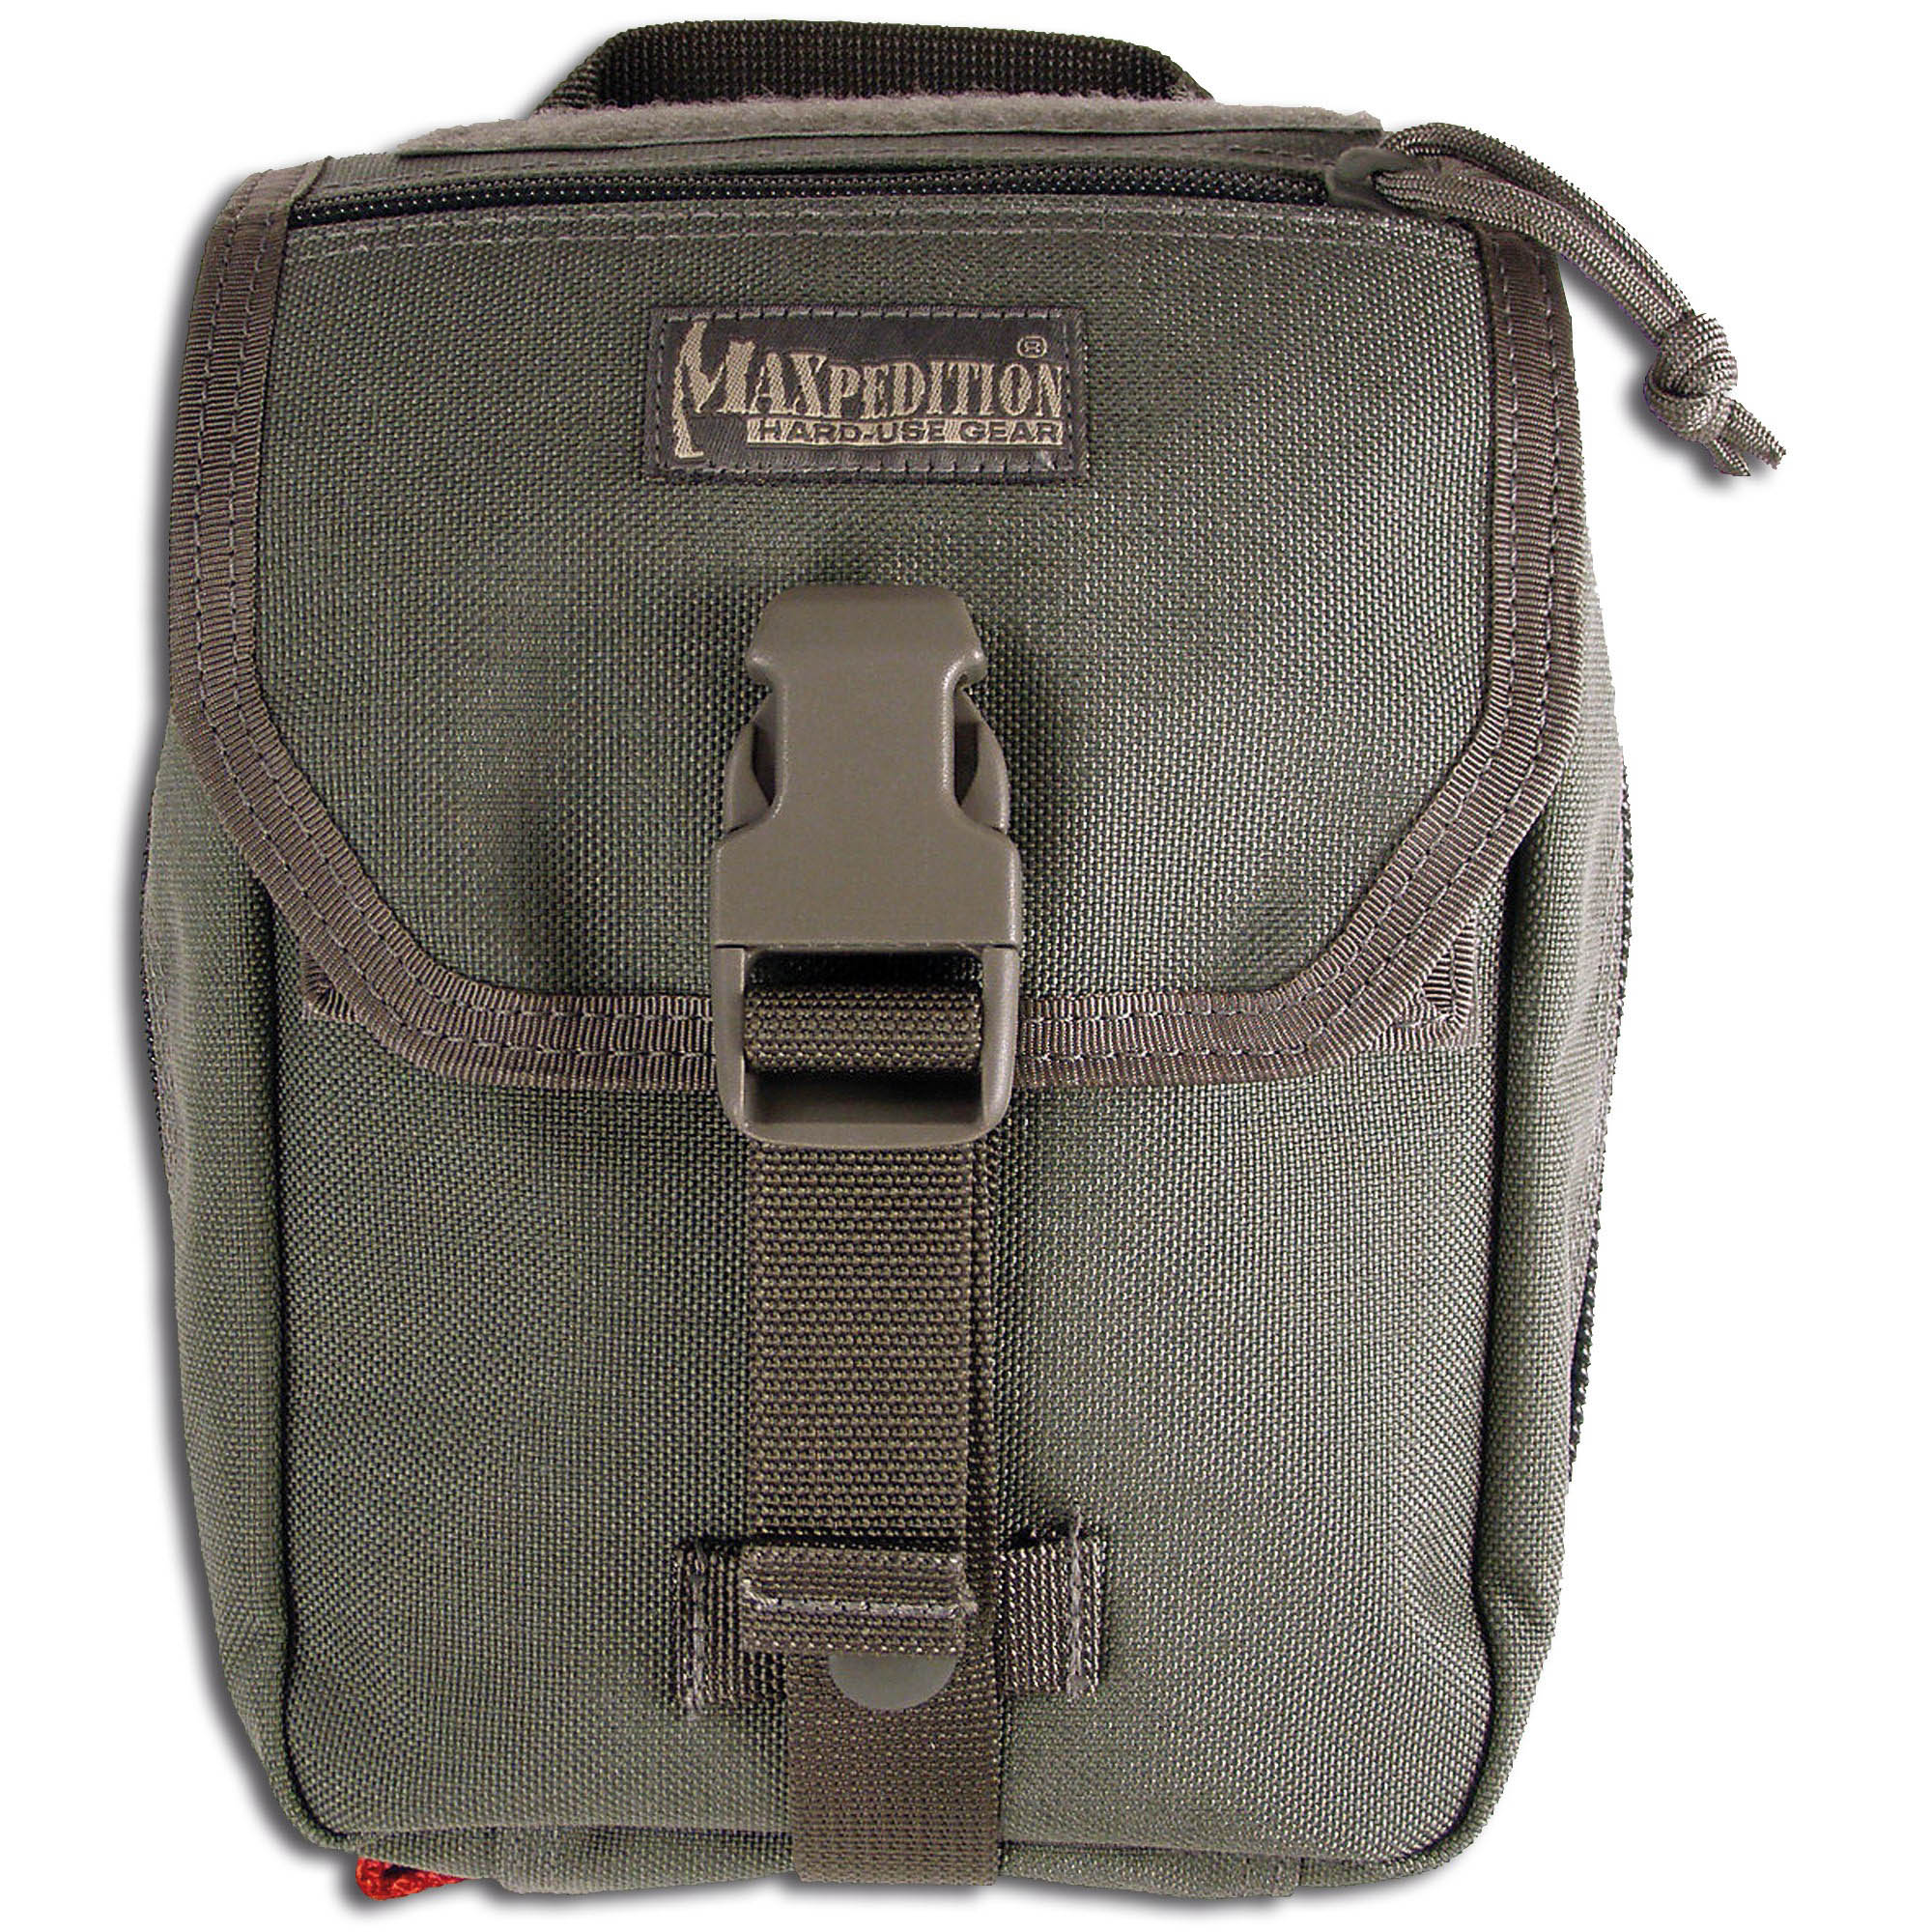 Maxpedition F.I.G.H.T. Medical Pouch foliage